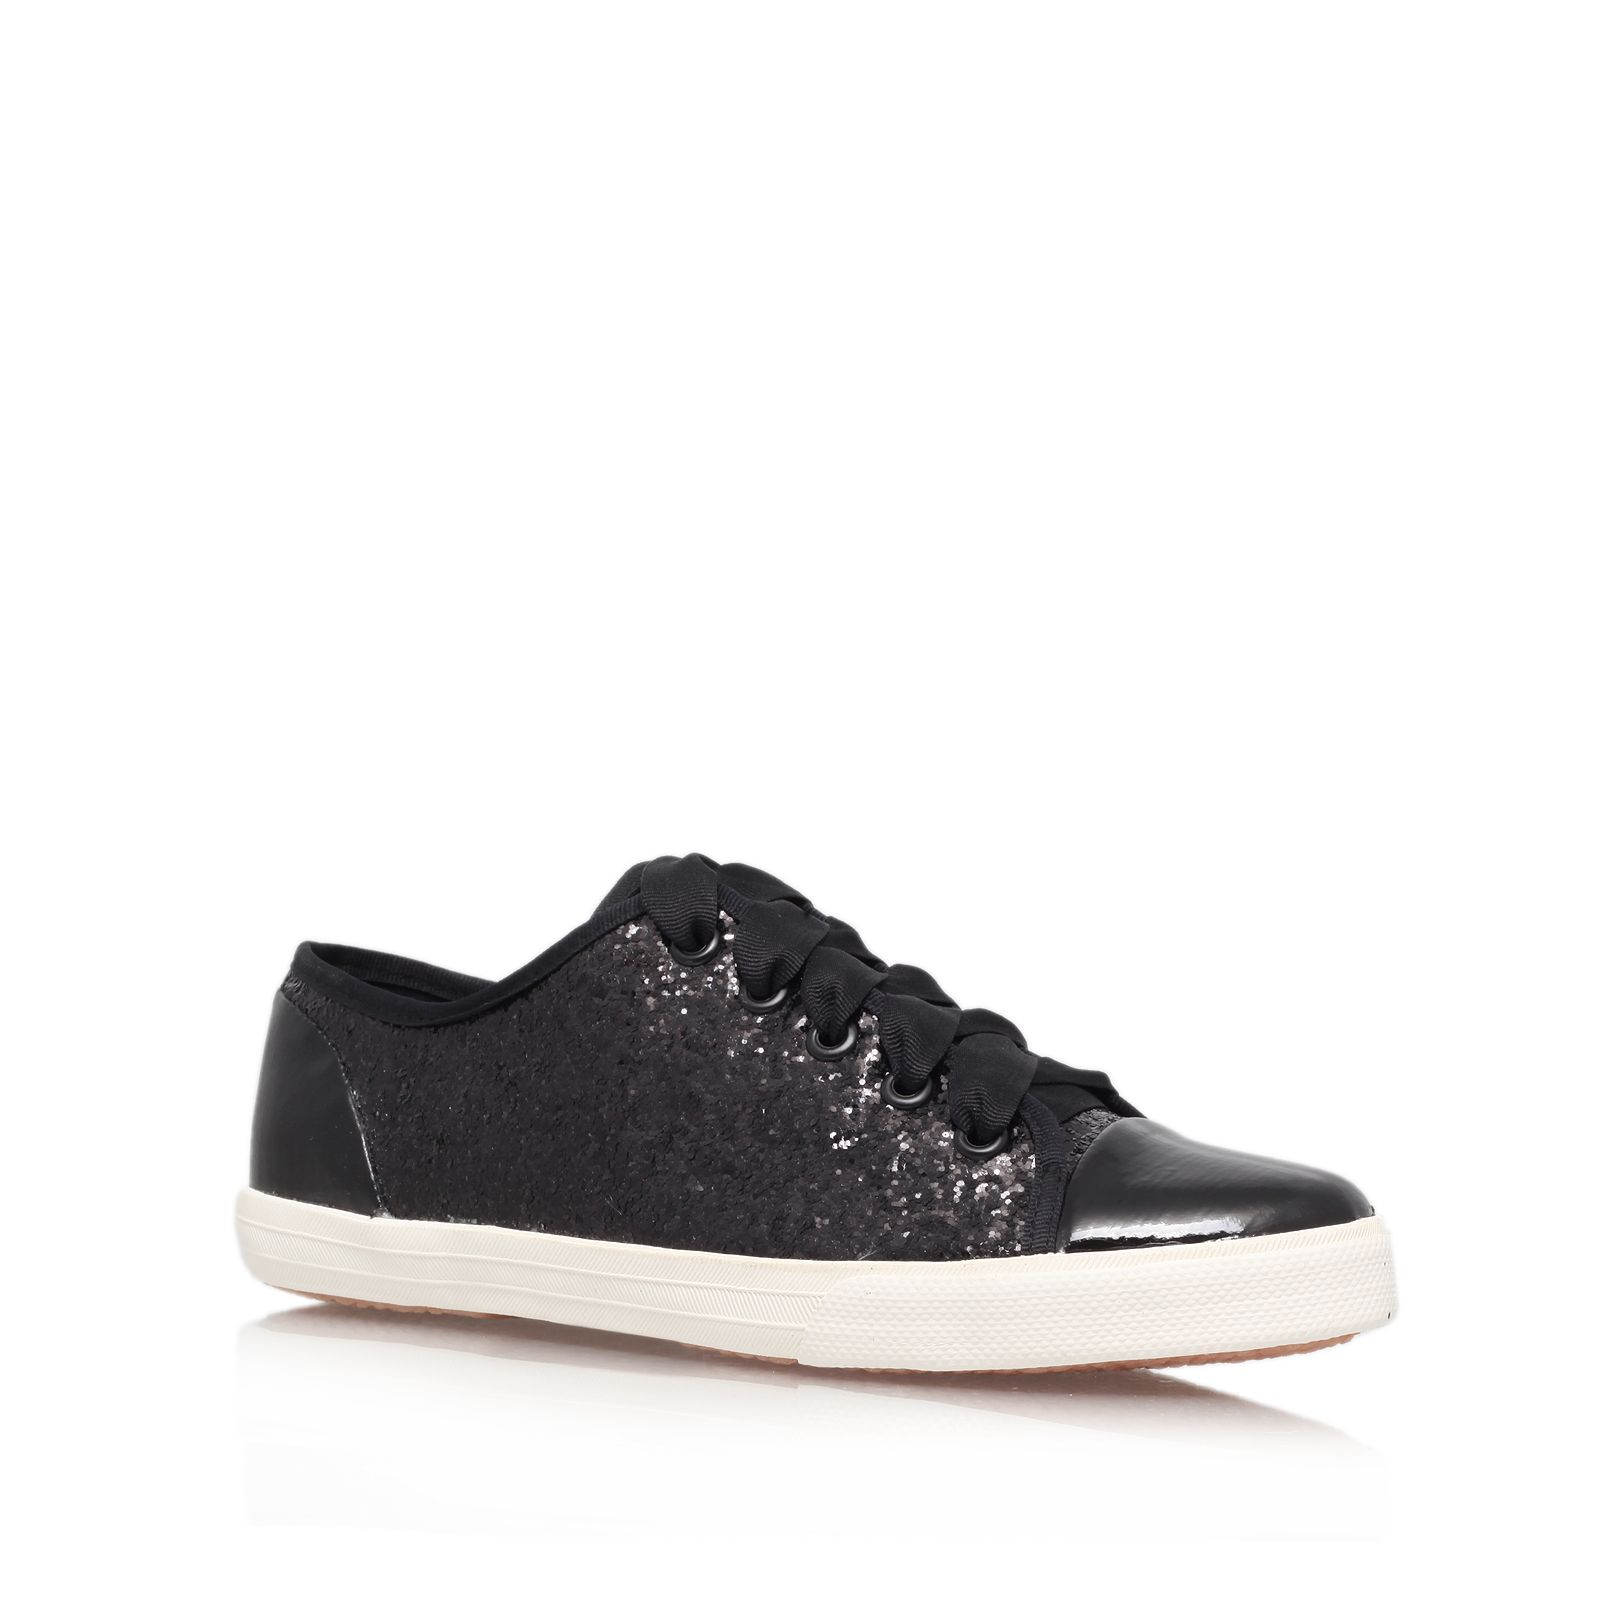 Jasper lace up shoes